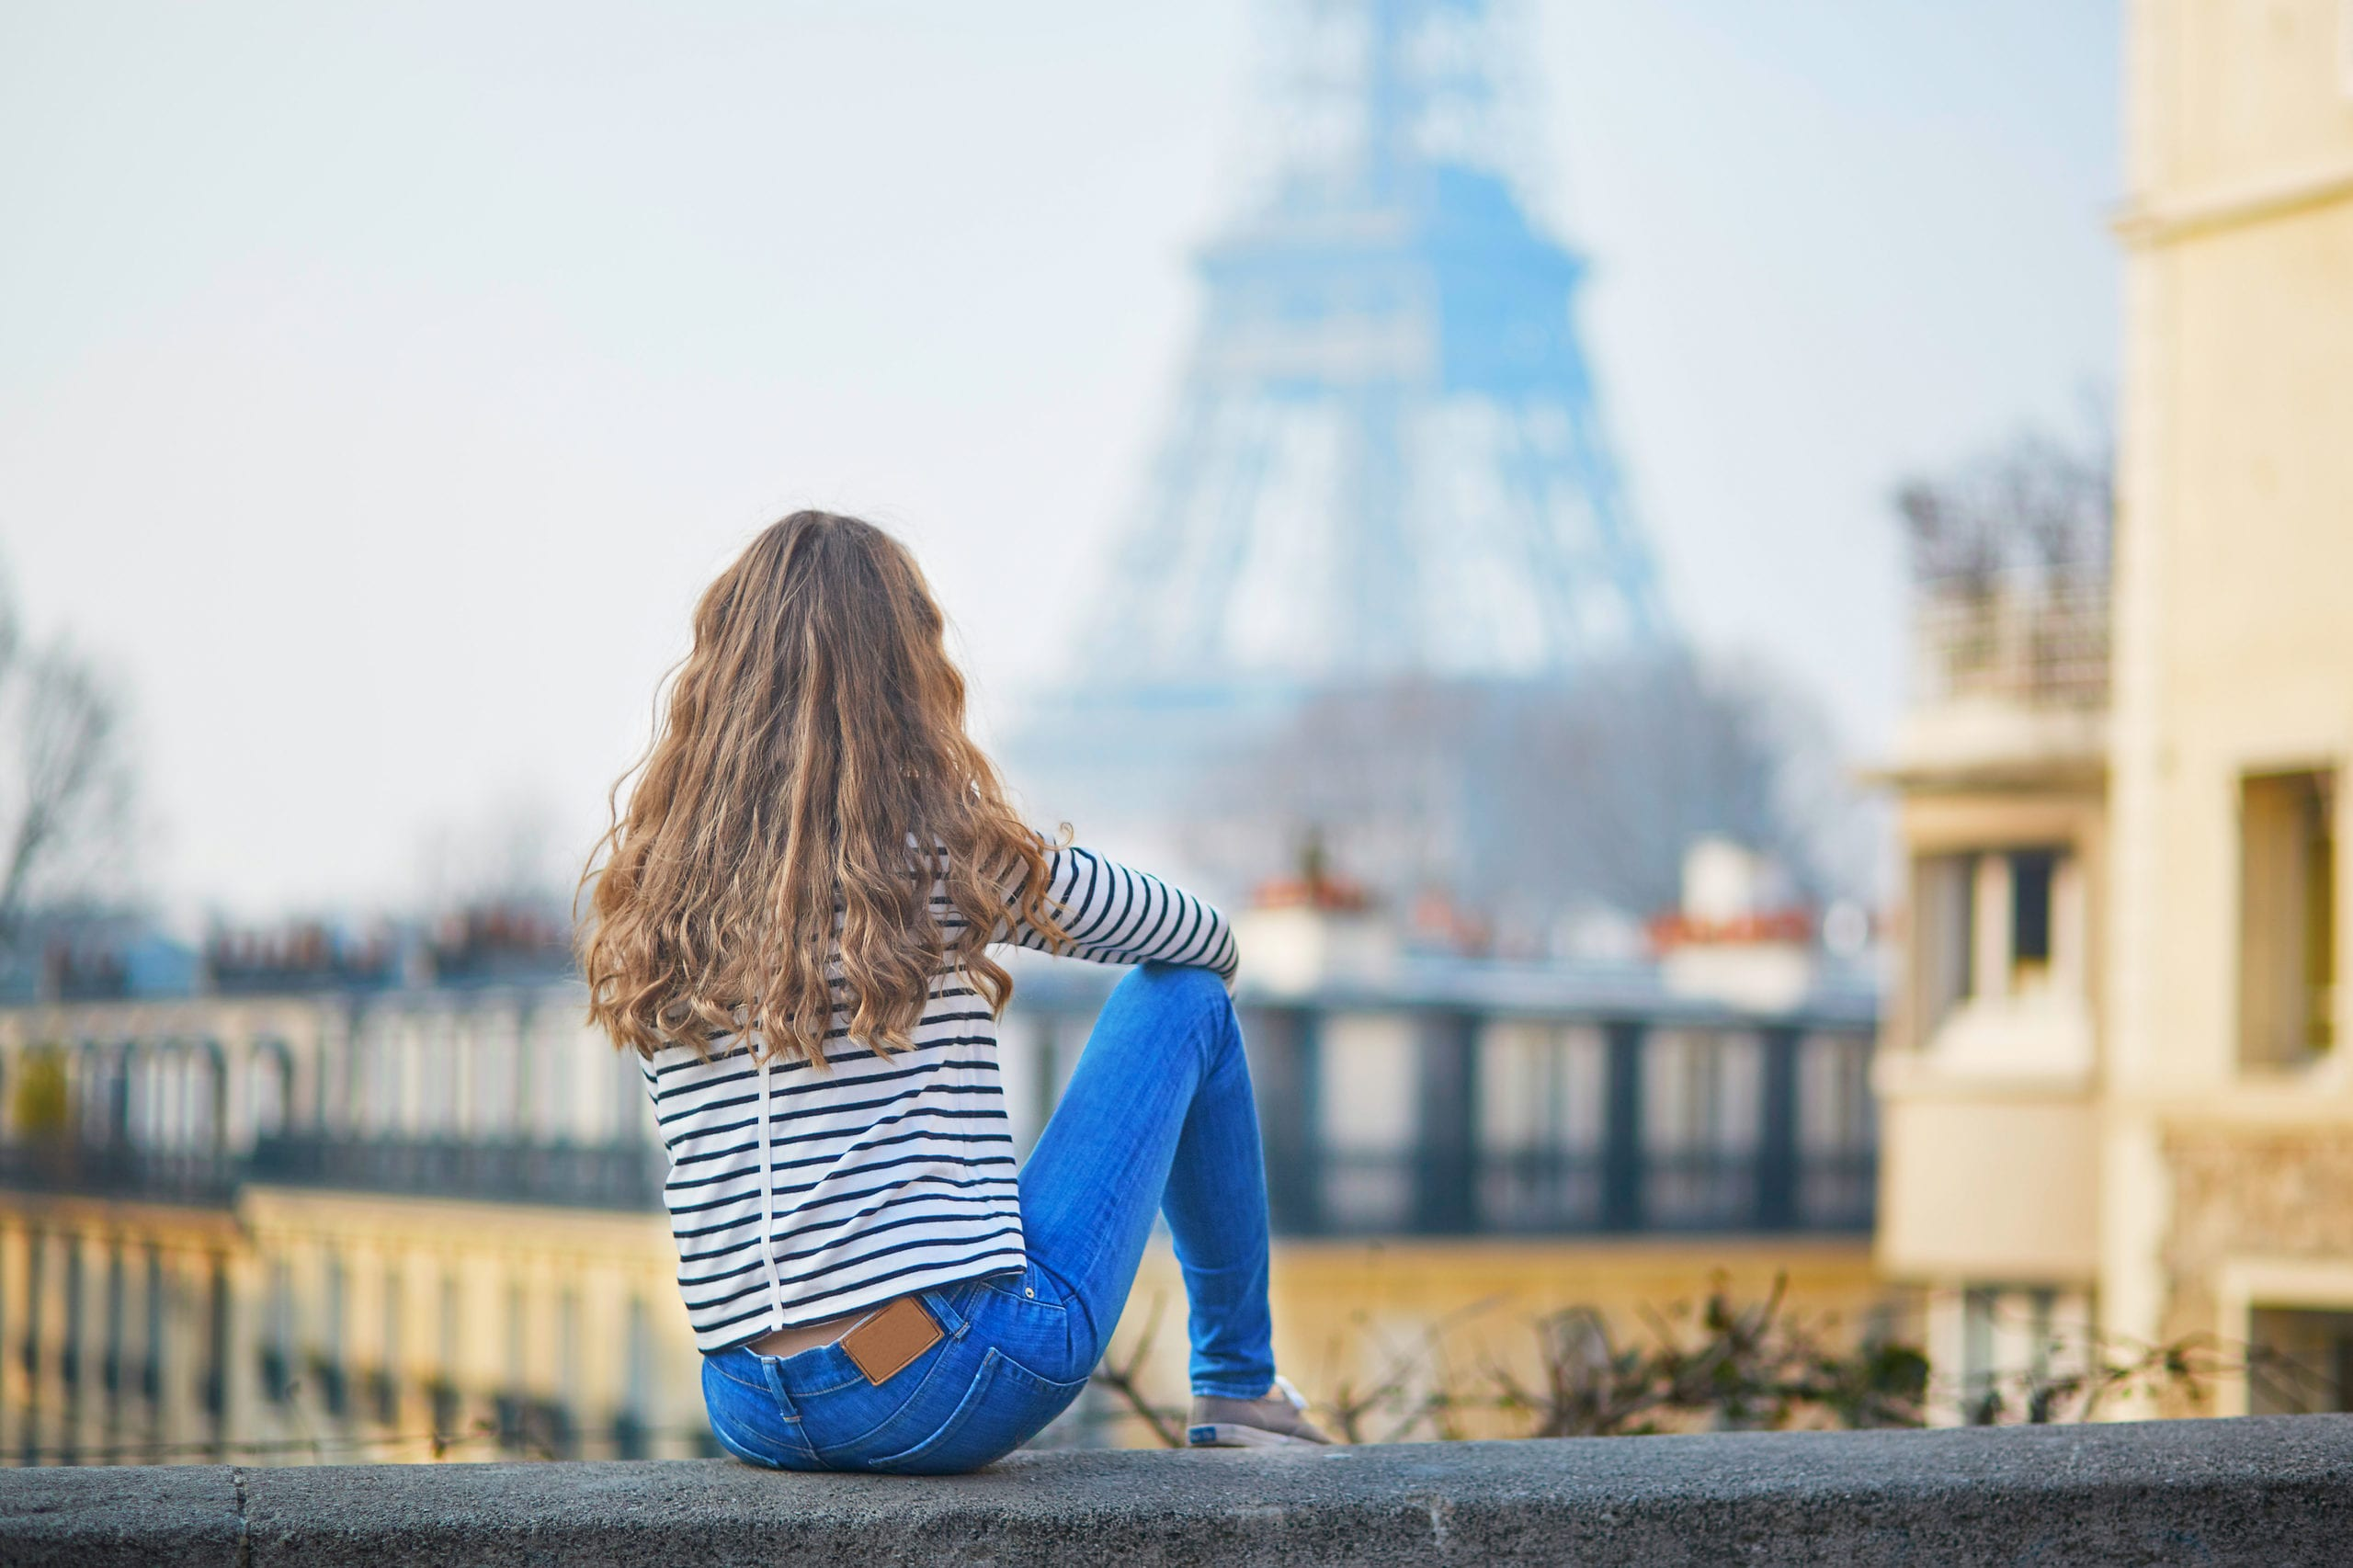 Beautiful young girl outdoors near the Eiffel tower, in Paris